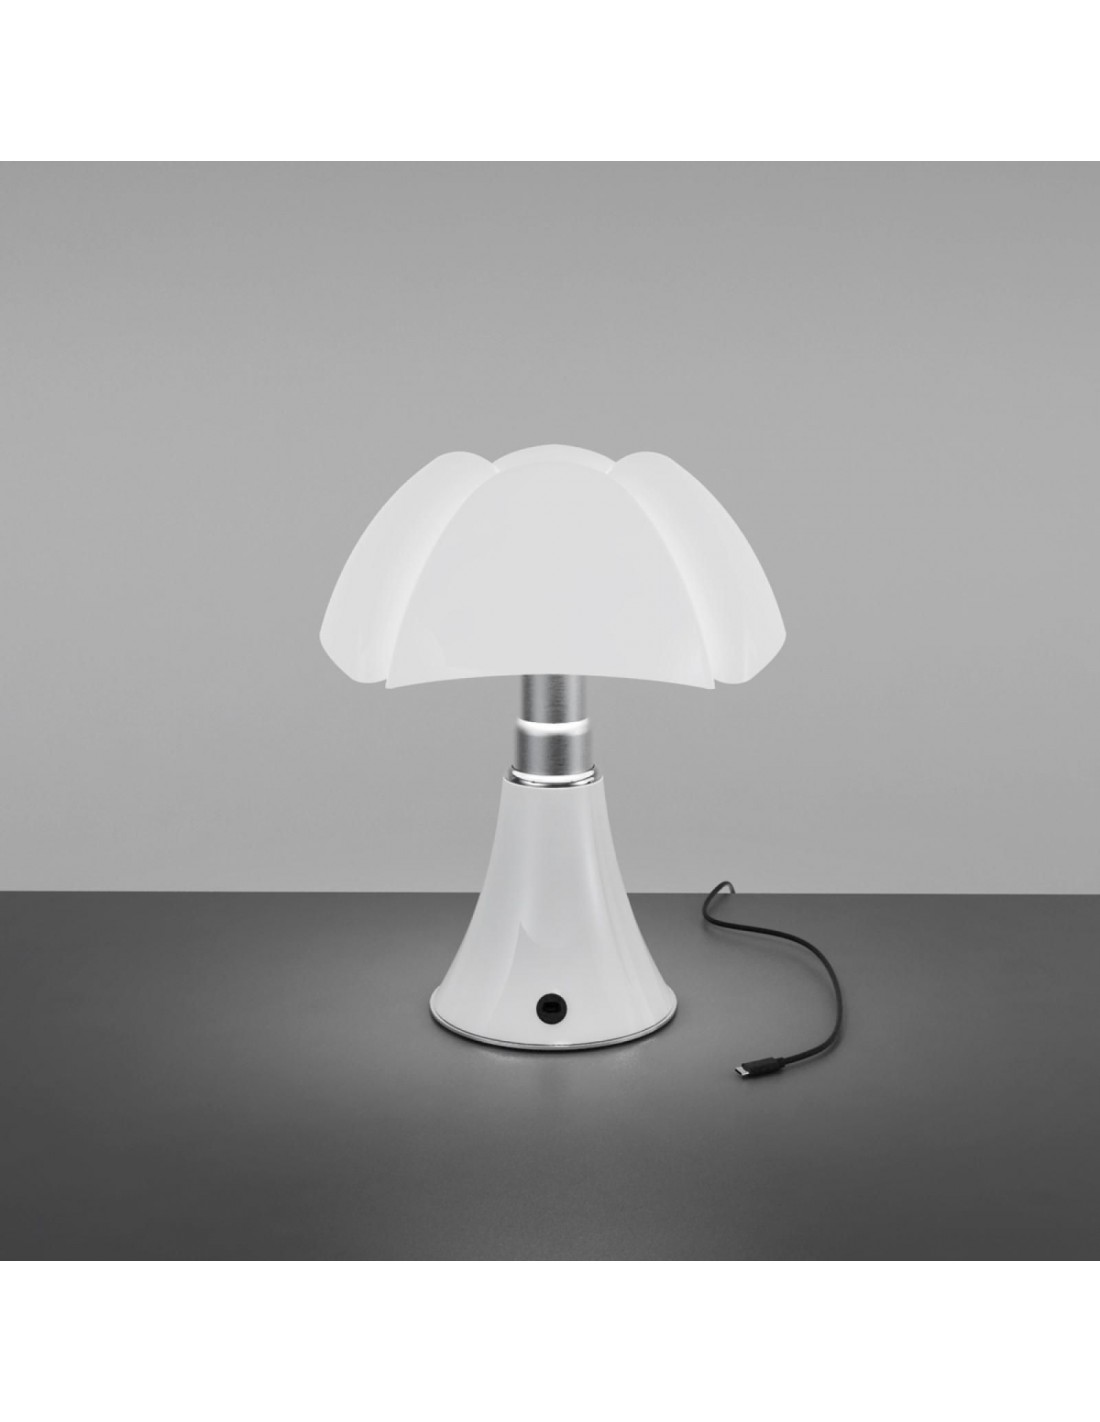 lampe de table minipipistrello led sans fil blanche vue d 39 ensemble. Black Bedroom Furniture Sets. Home Design Ideas